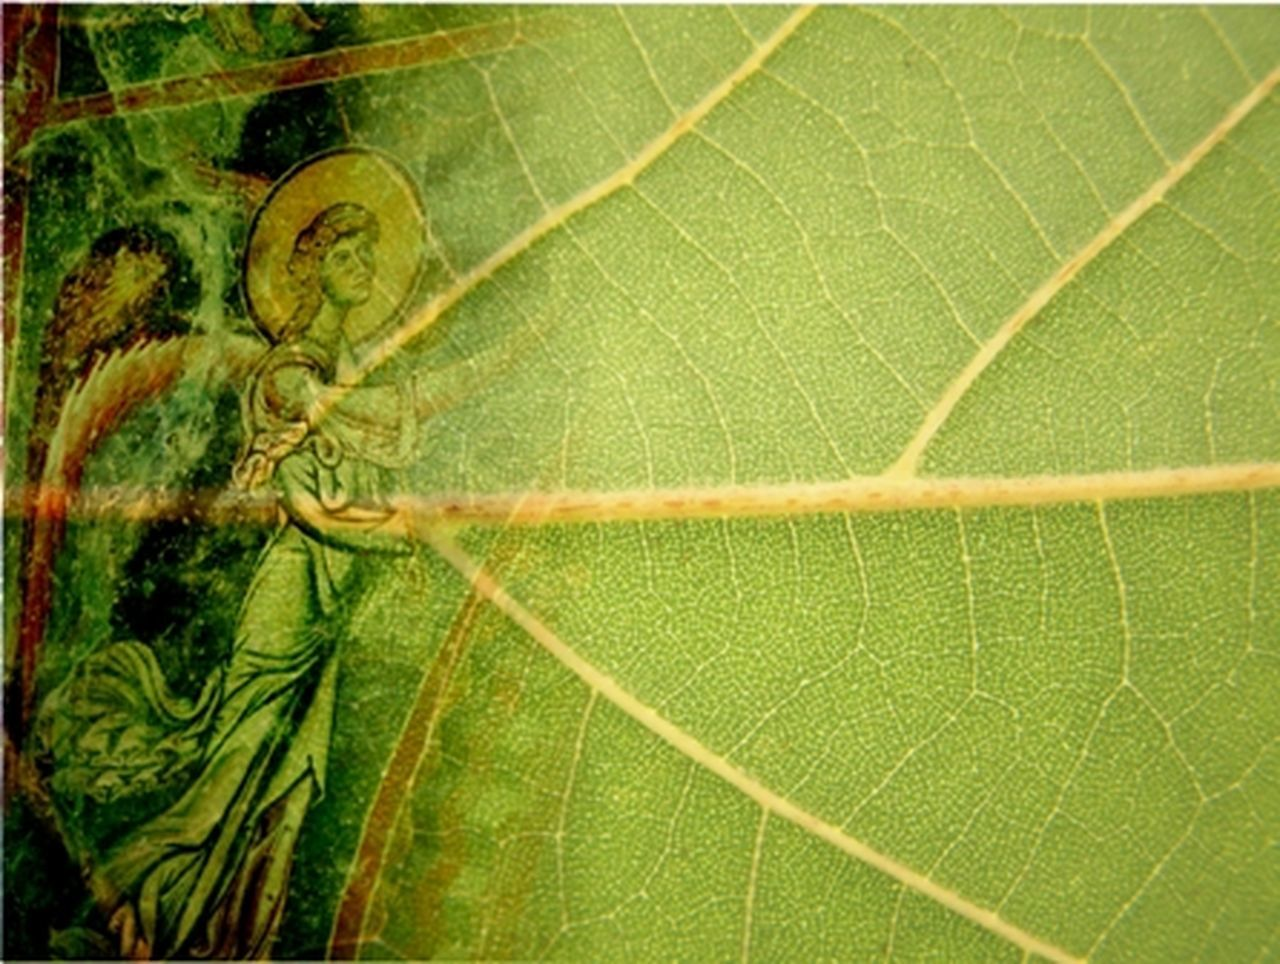 montage of a archangel gabriel from kurbinovo village in macedonia and green leaf Angel Archangel Archangel Gabriel Beauty In Nature Close-up Concept Day Fresco Paintings Freshness Green Color Growth Kurbinovo Leaf Macedonia Montage Montage Photography Nature No People Outdoors Plant Religion Vein